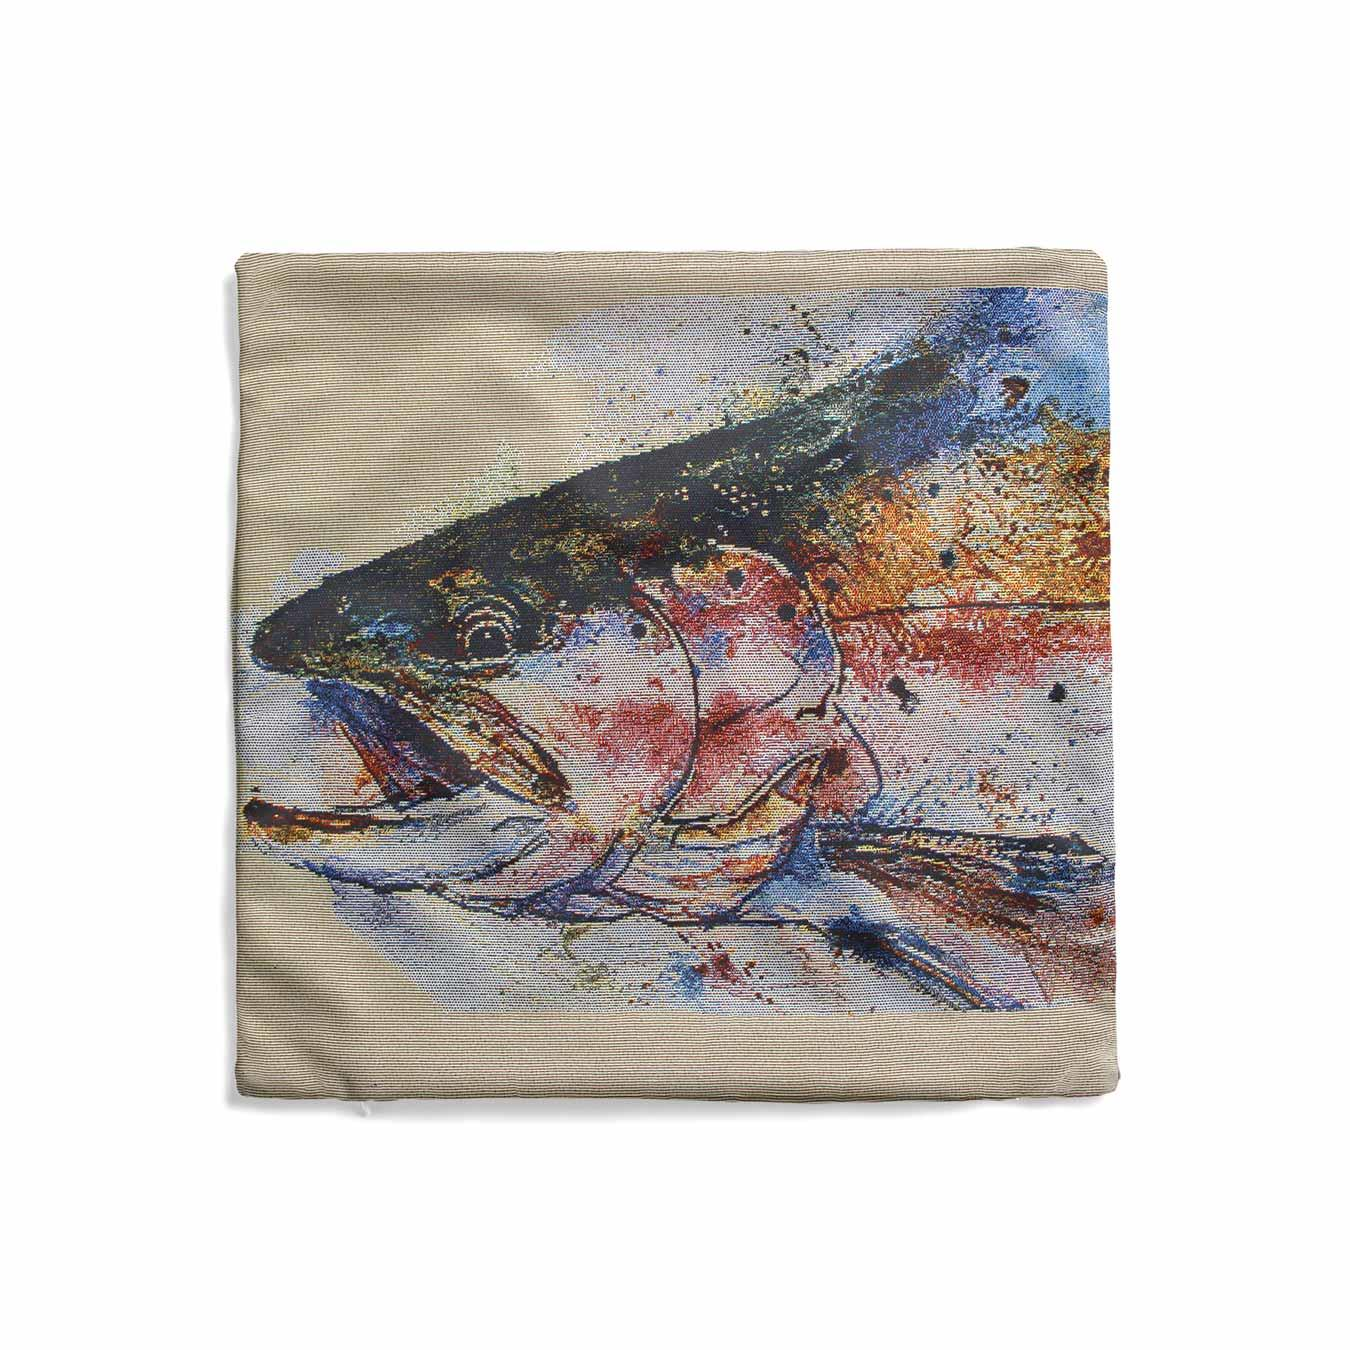 Tapestry-Cushion-Covers-Vintage-Pillow-Cover-Collection-18-034-45cm-Filled-Cushions thumbnail 215